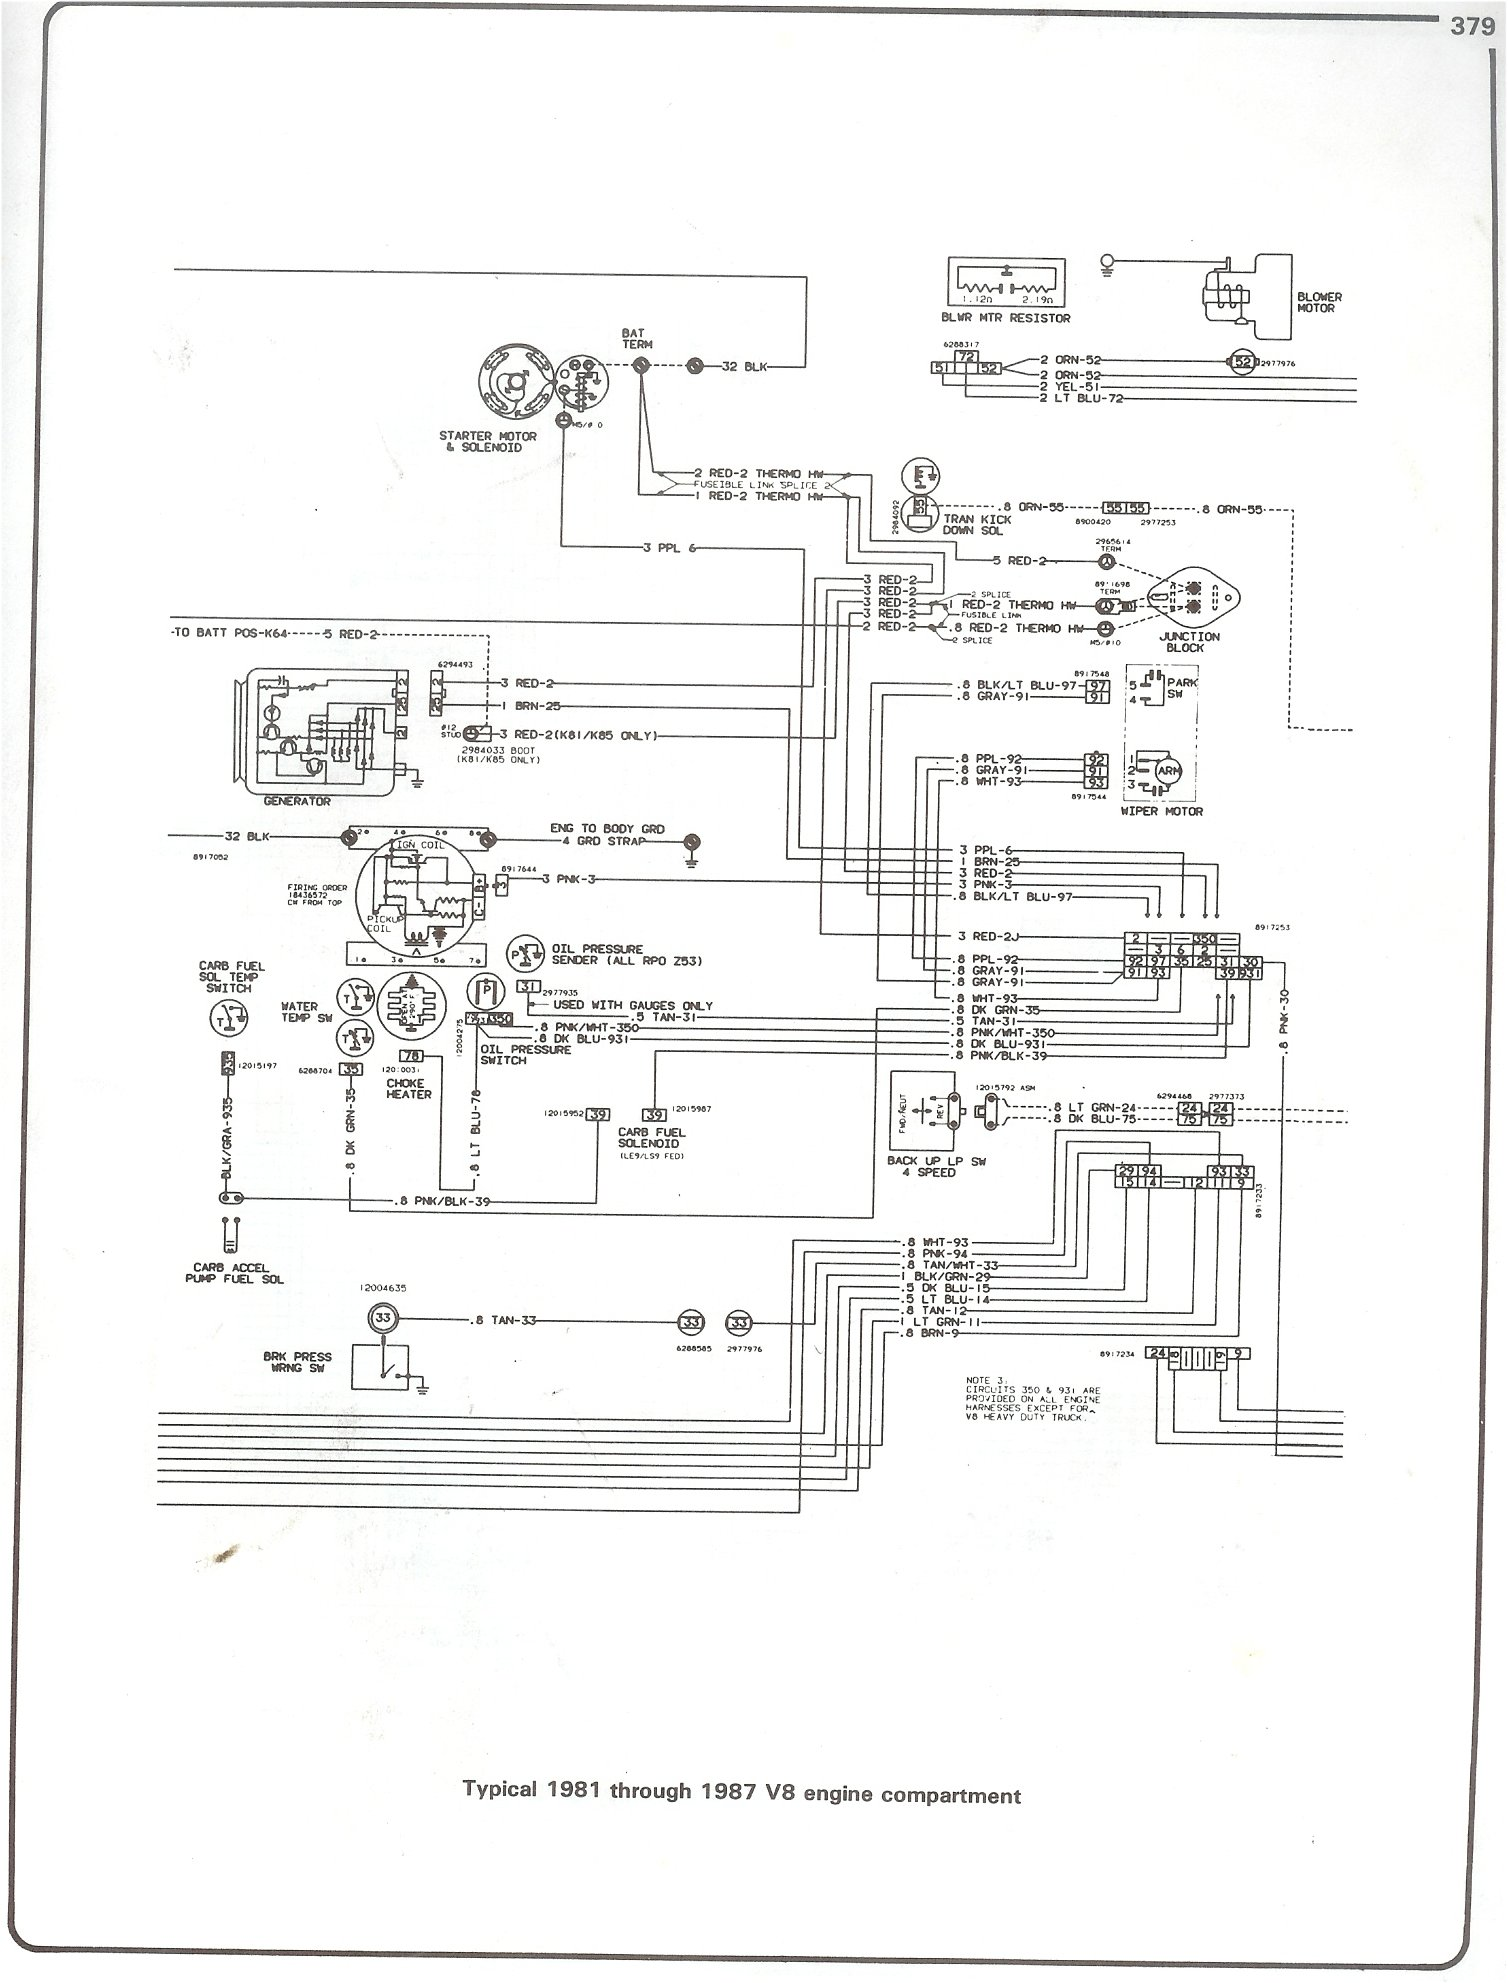 83 K20 Wiring Diagram Guide And Troubleshooting Of Small Block Chevy 1981 Complete 73 87 Diagrams Rh Forum 87chevytrucks Com 1978 K10 Truck